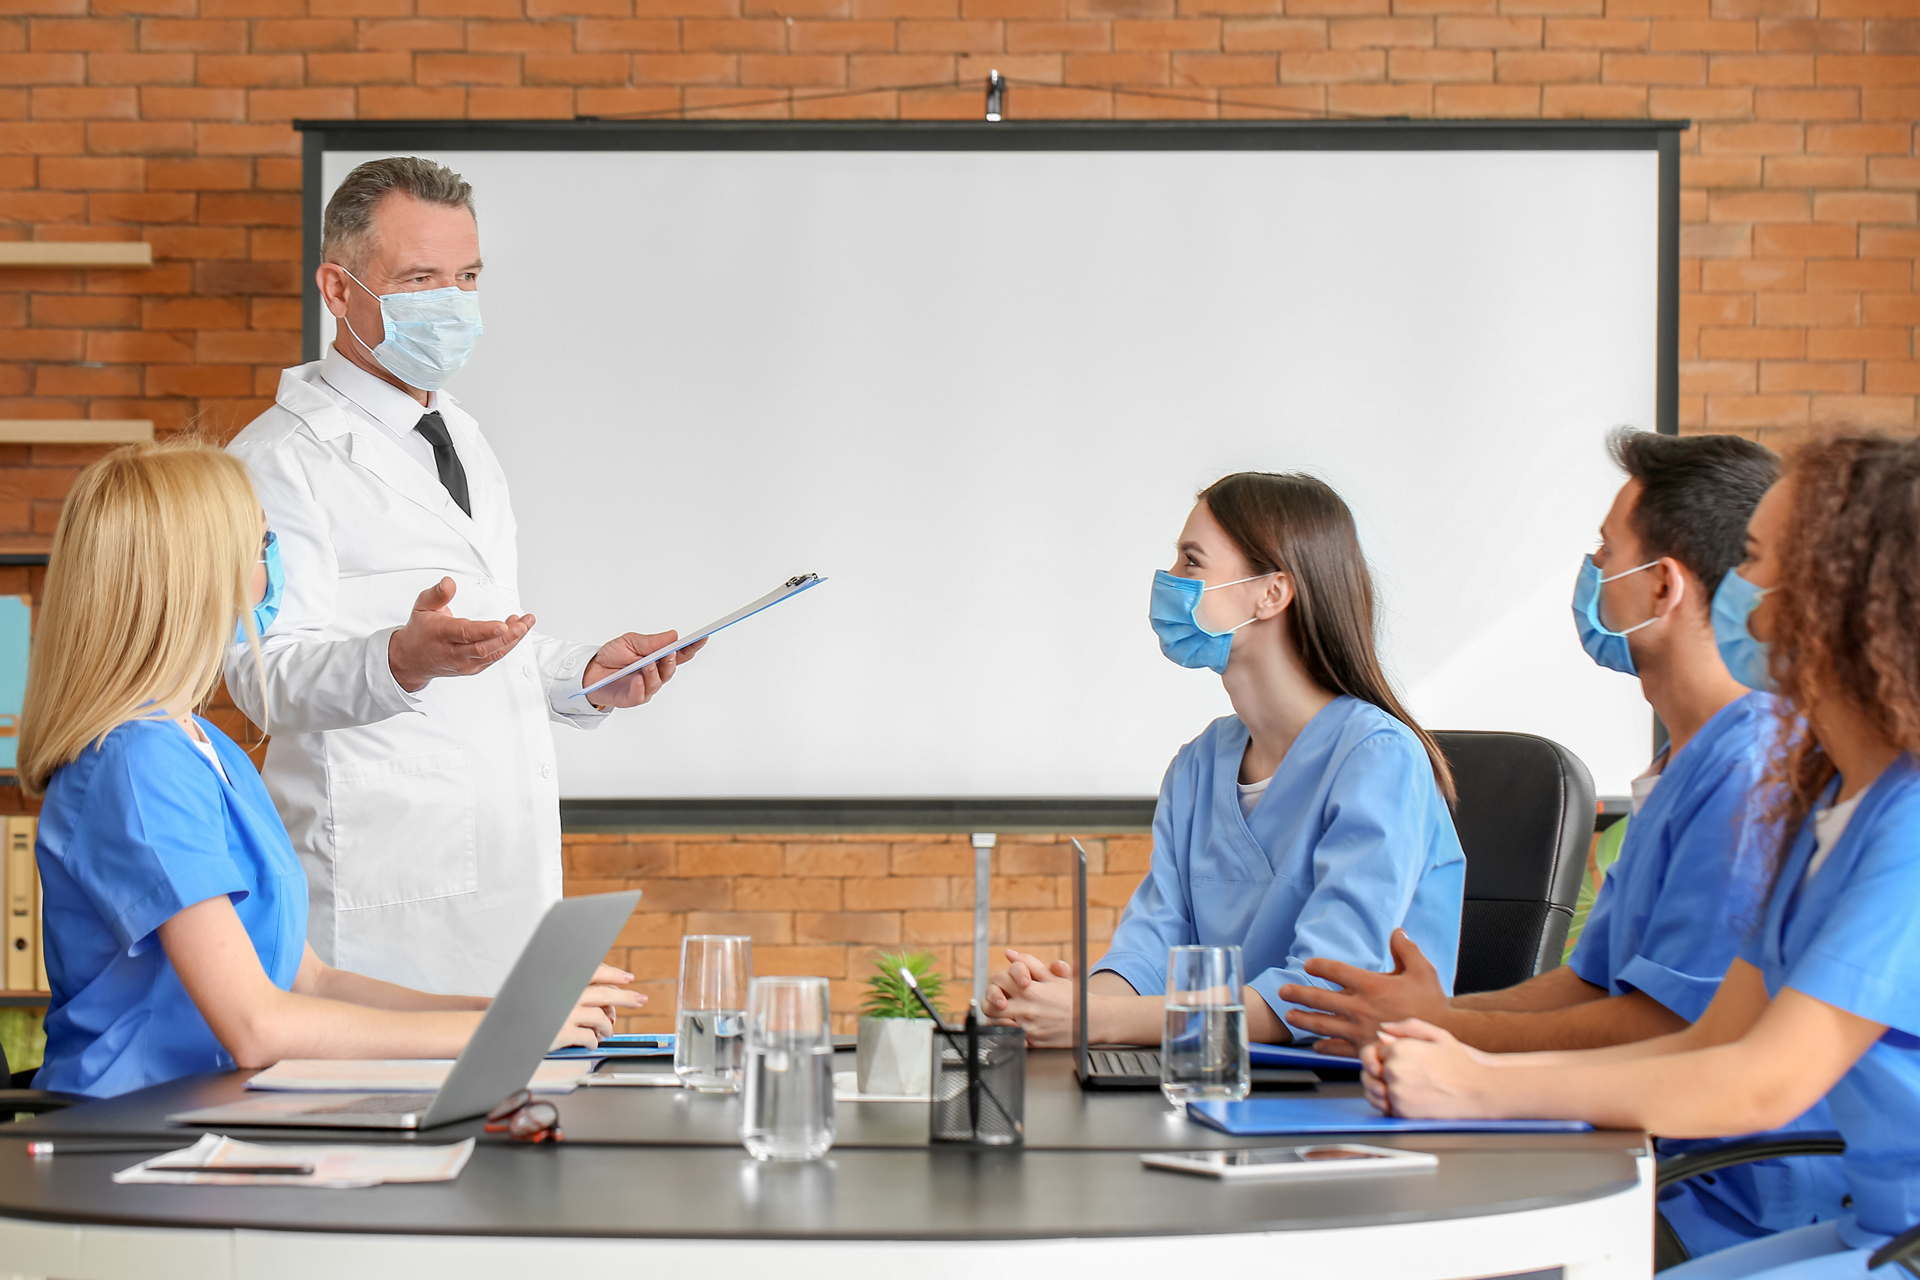 Medical educator and healthcare worker students in classroom wearing face masks